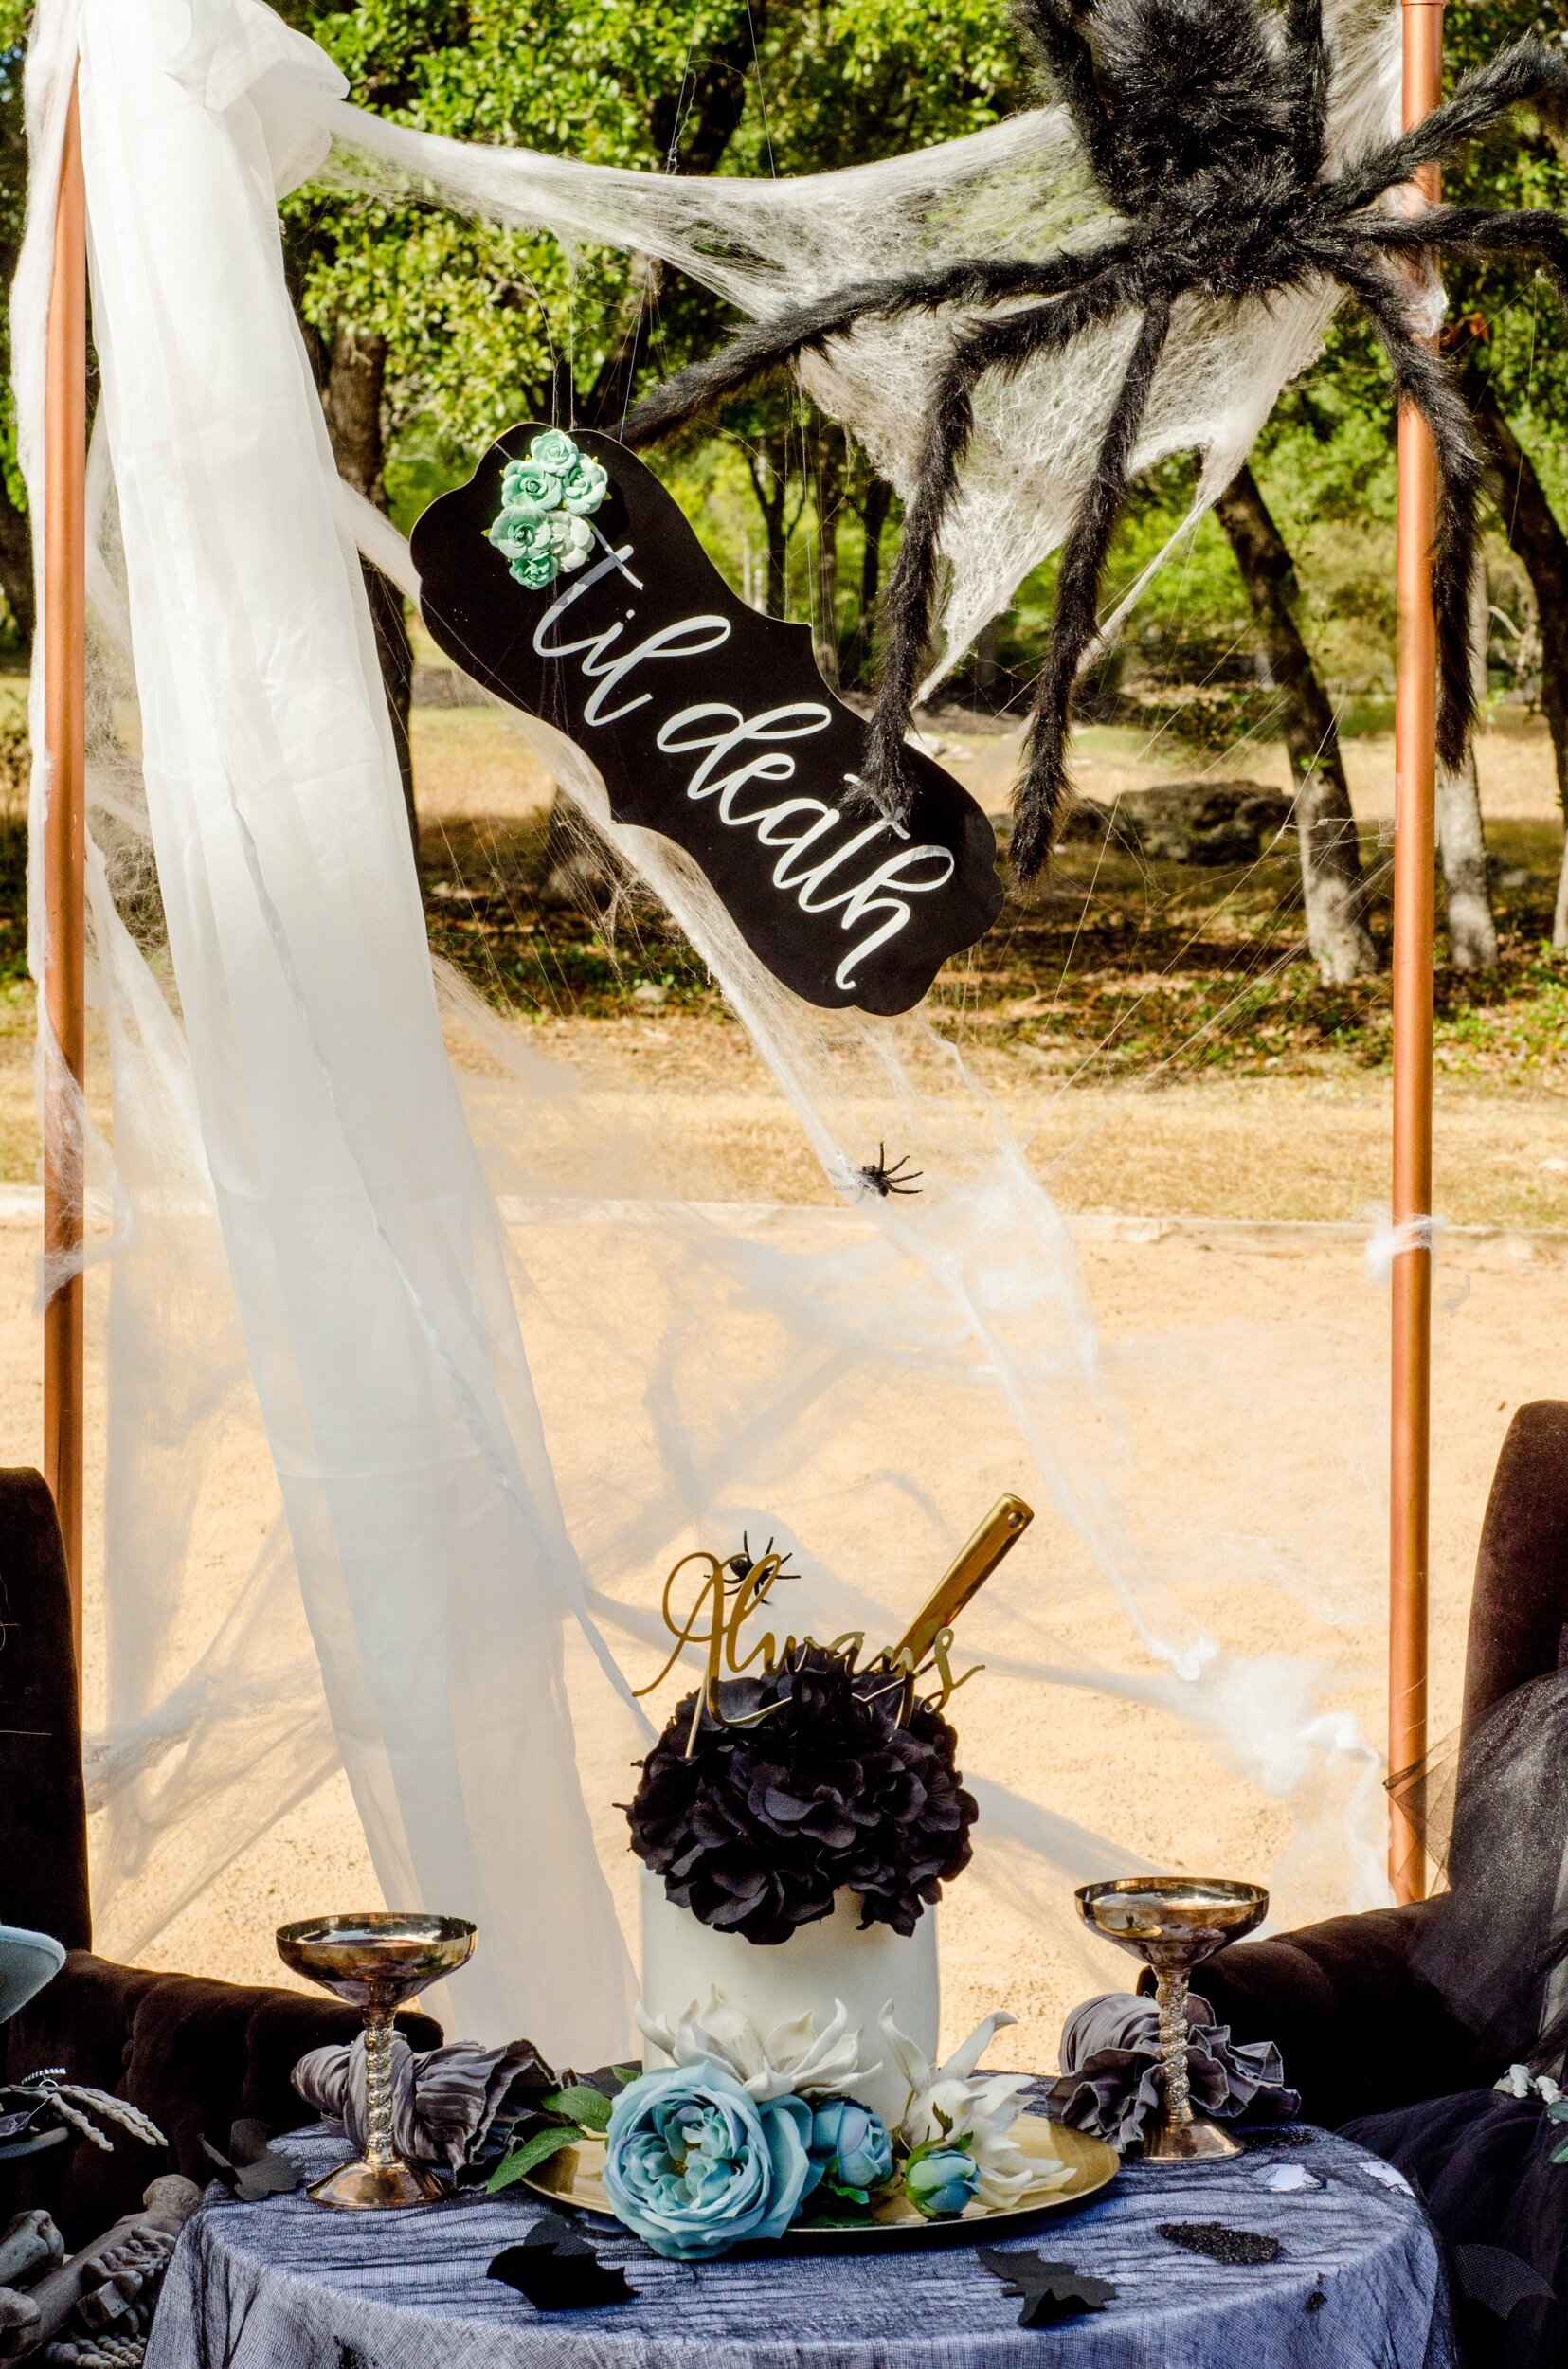 Halloween themed wedding ideas - this photo booth backdrop was created by using copper pipes adorned with spider webs, a giant spider, and a gauzy curtain. As seen on Mint Event Design www.minteventdesign.com